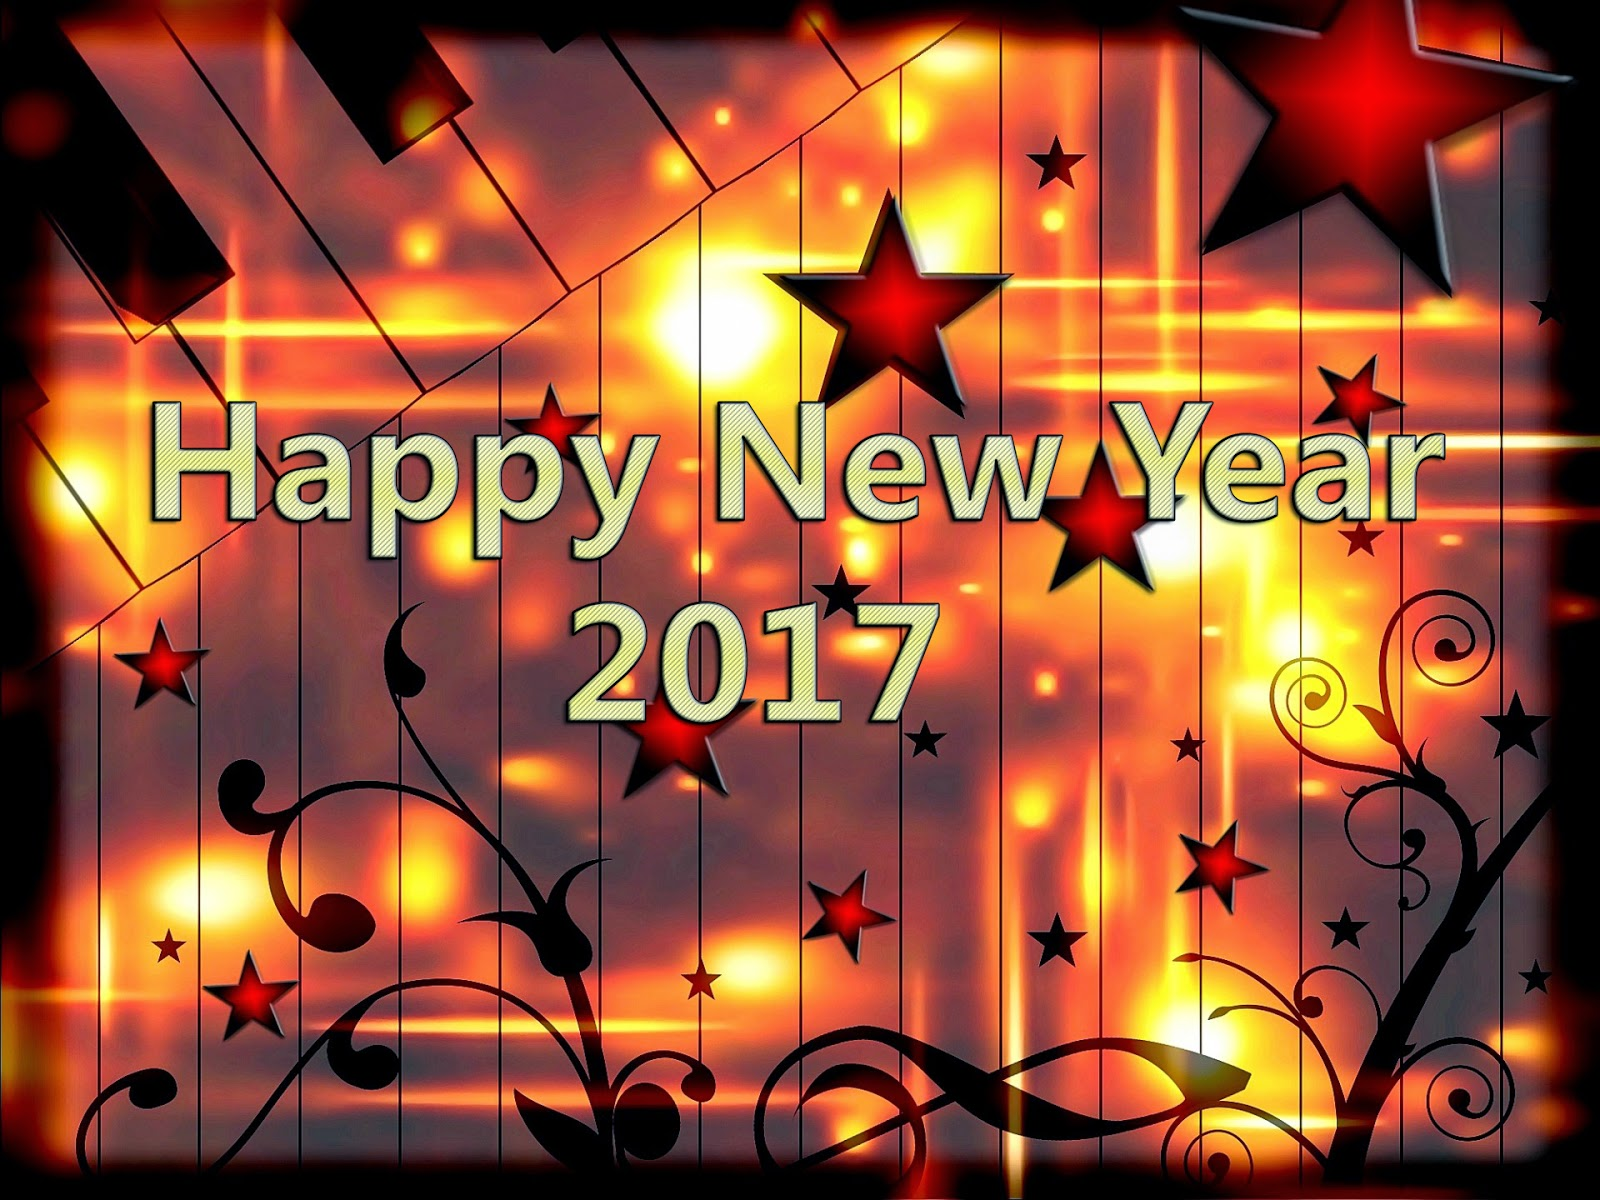 Wallpaper download hd 2017 - Wallpaper Download 2017 New Year Images 2017 Wallpaper Download Pictures Image In Hd Photos Free